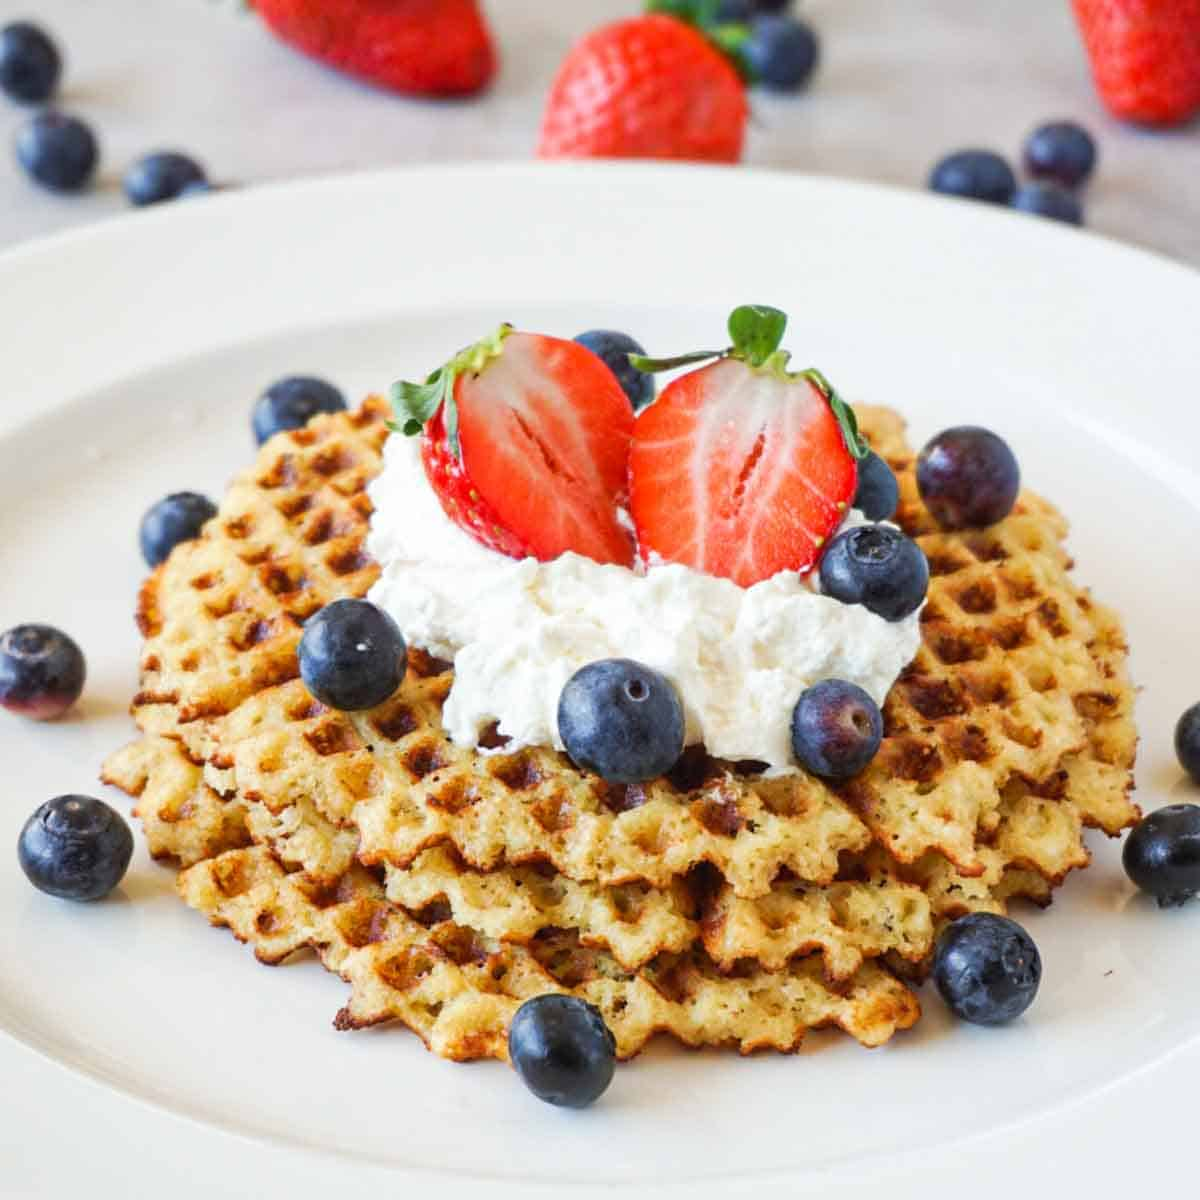 Keto waffles topped with whipped cream, fresh blueberries and strawberries on a white ceramic plate.